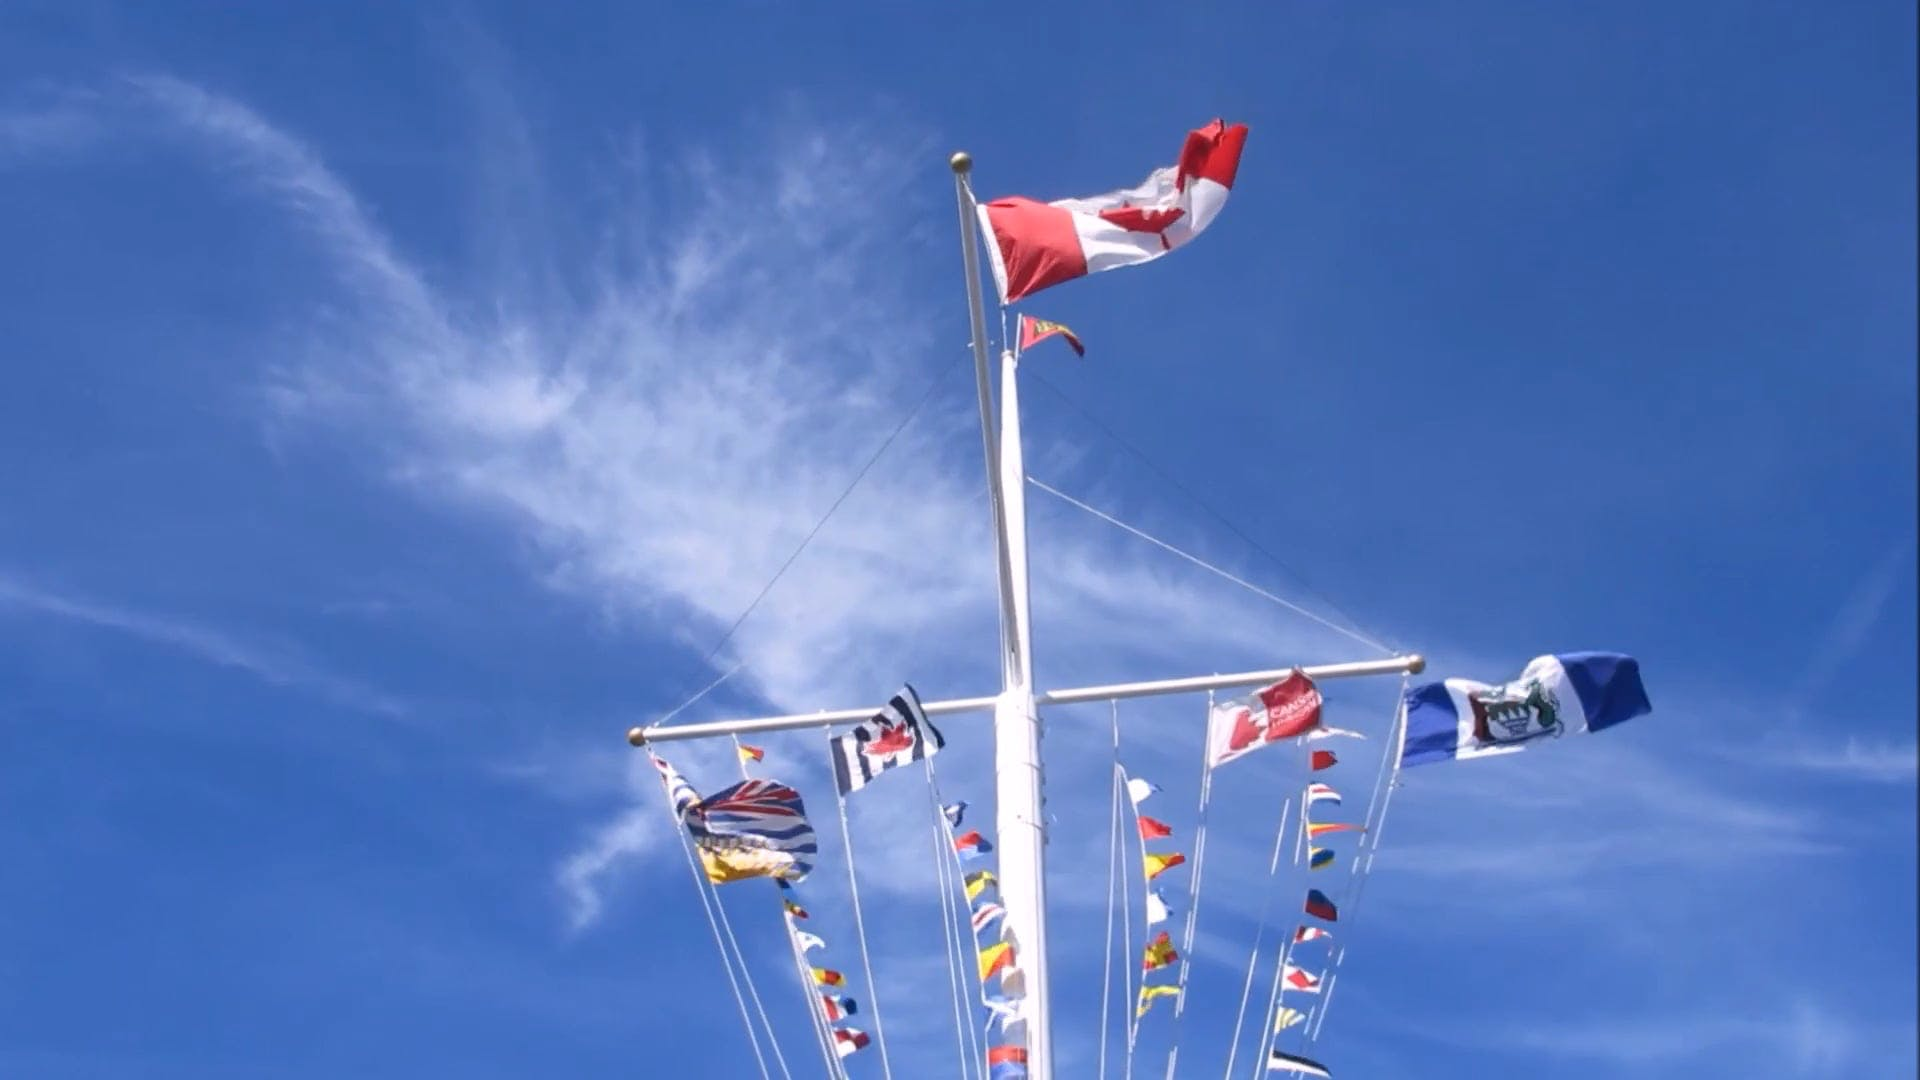 Flags Swaying In The Wind